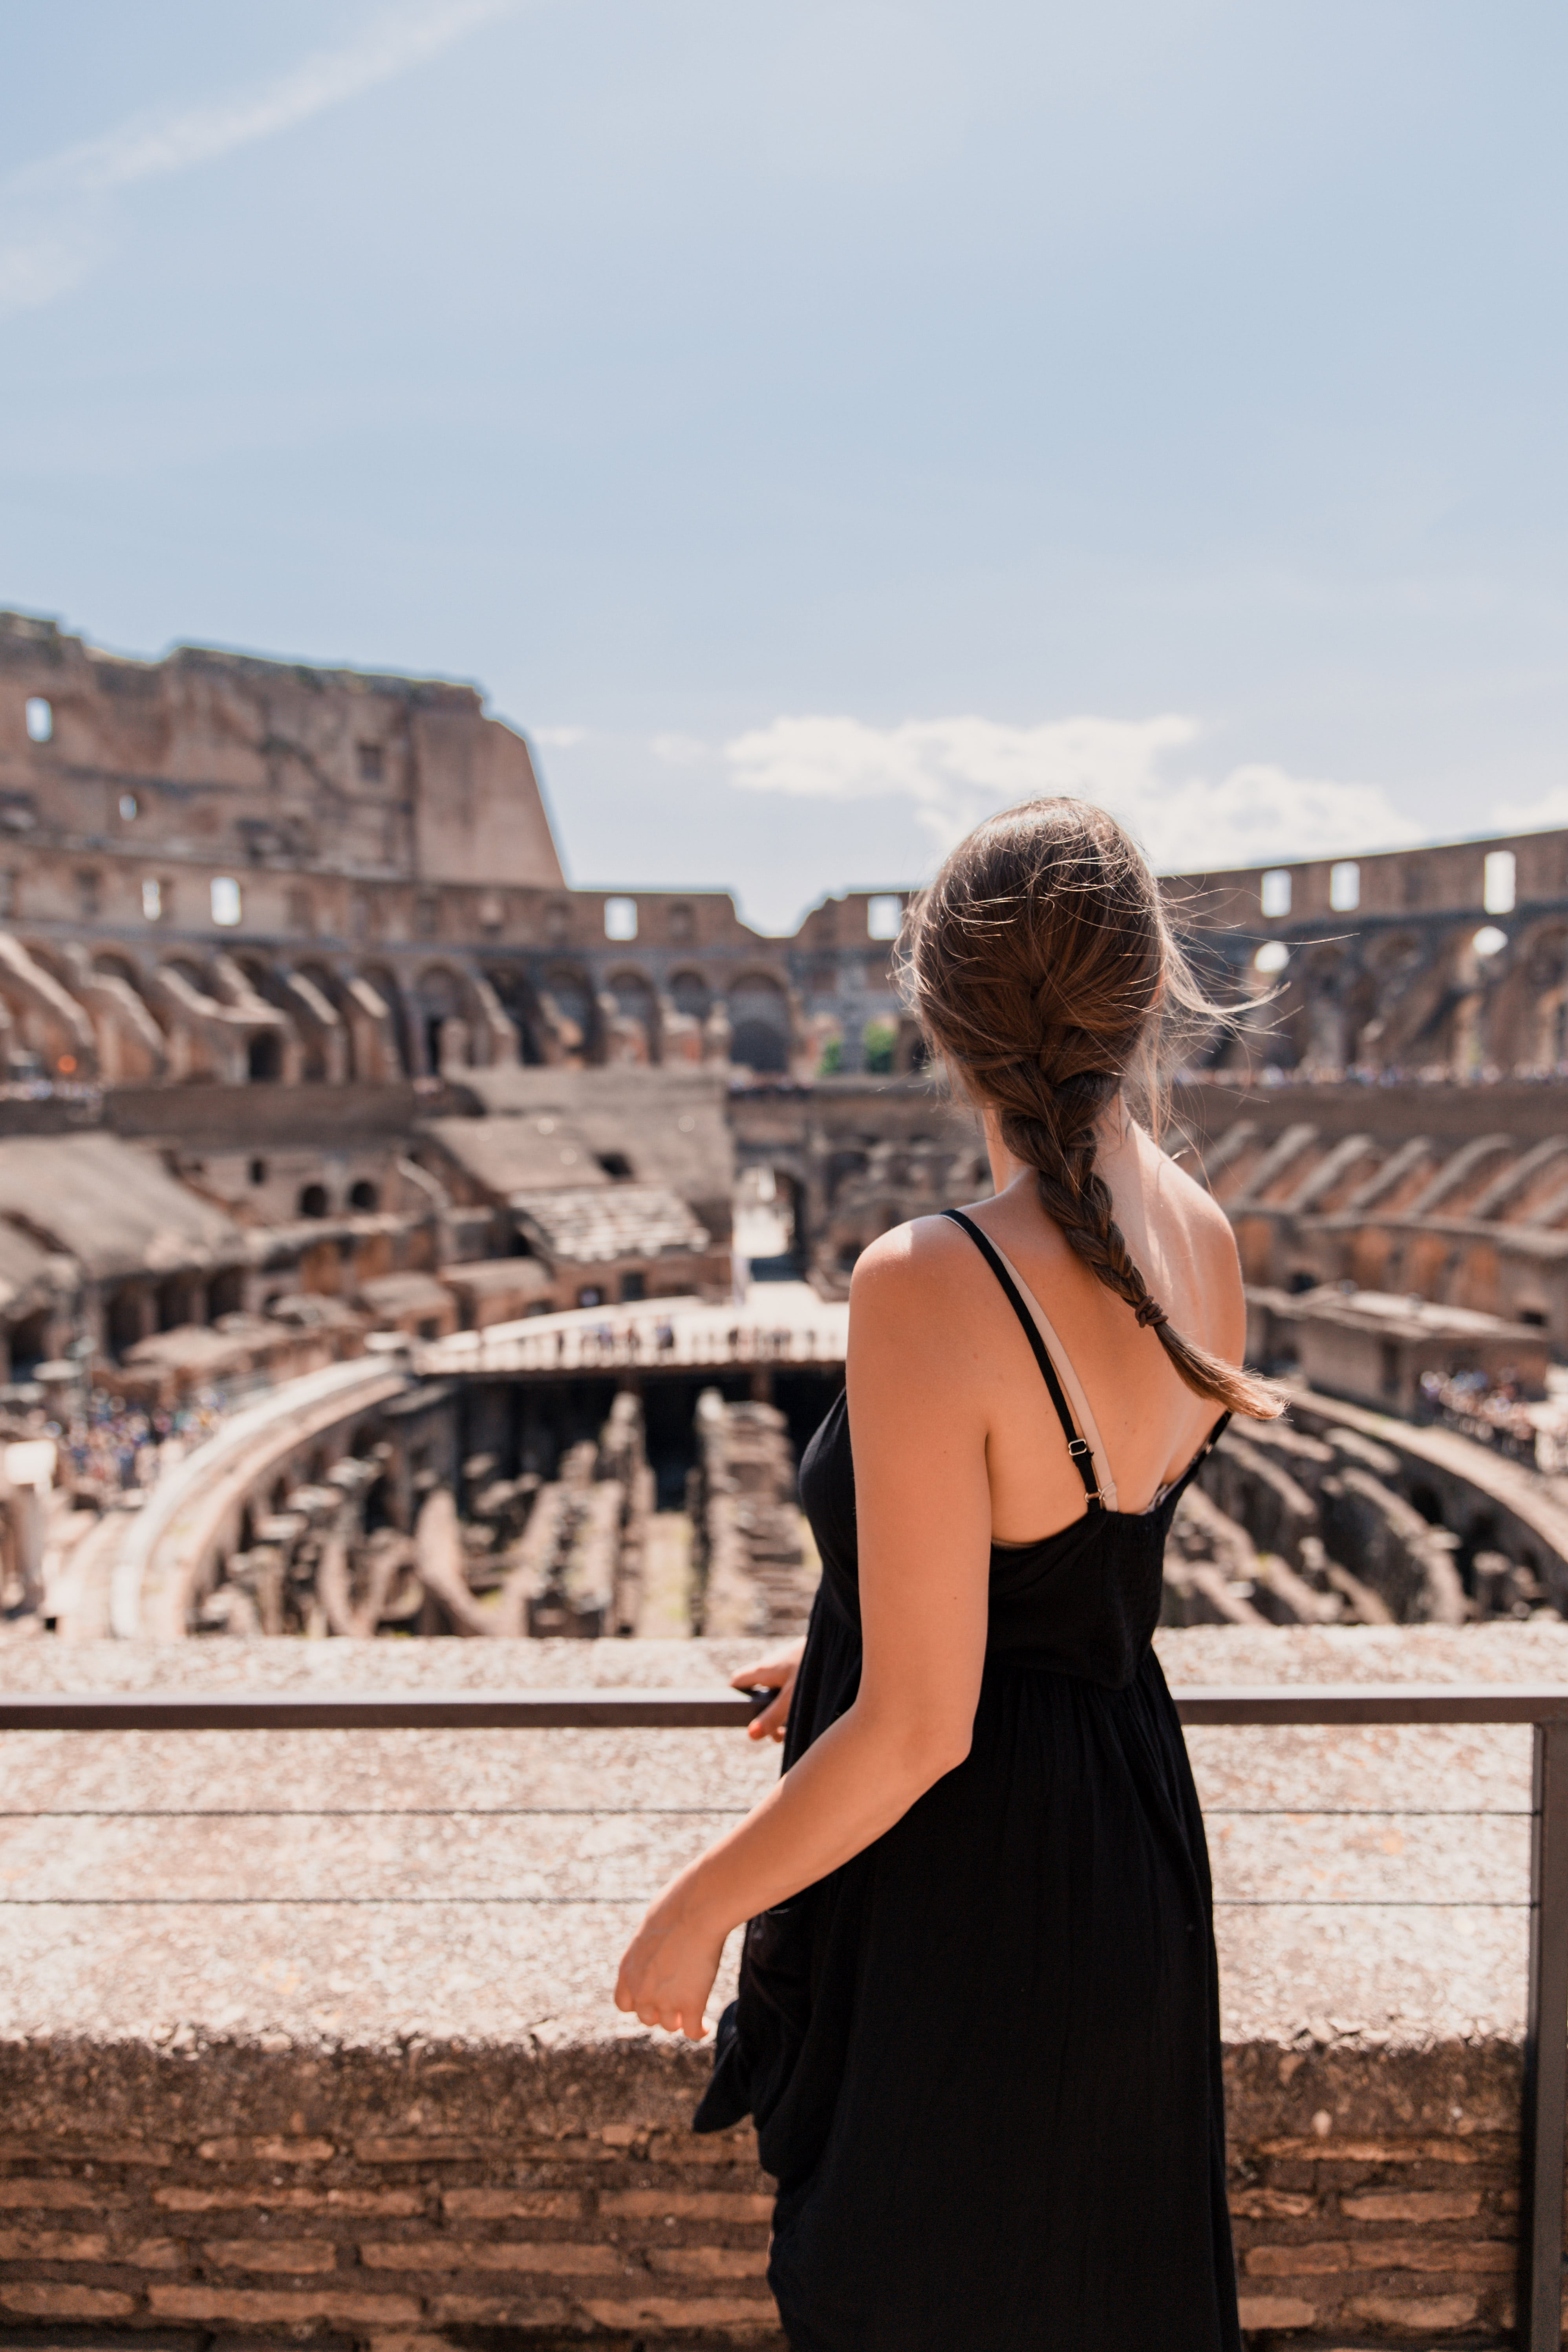 Visiting the Colosseum in Rome | How to Skip the Lines & Gain VIP Top Level Access